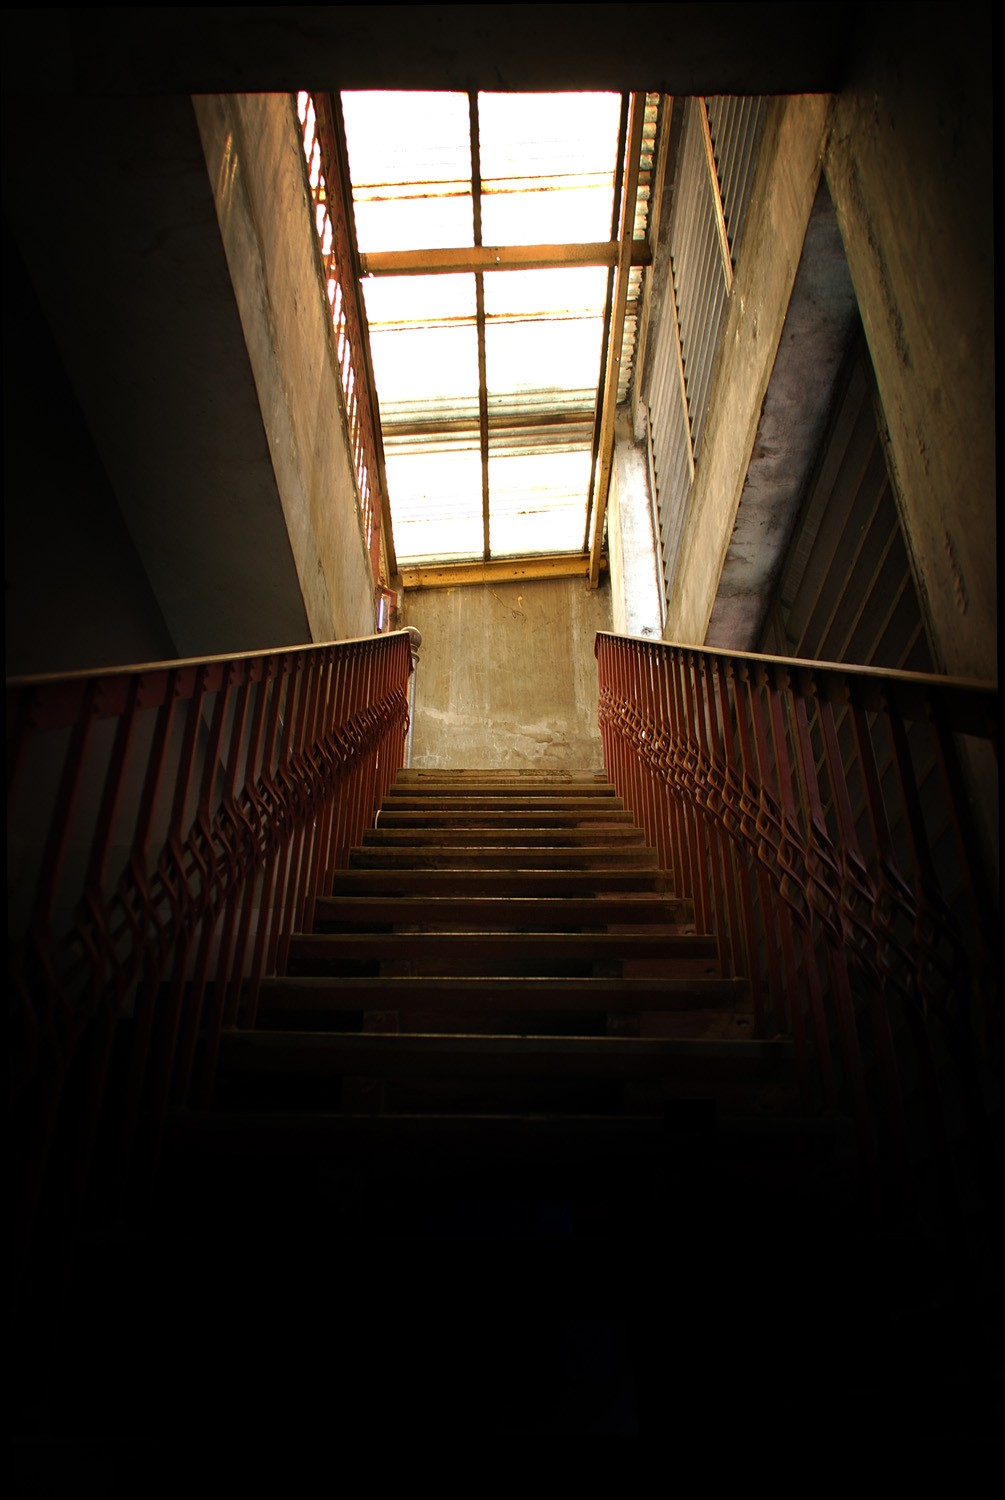 mysterious-stairs-1228683.jpg